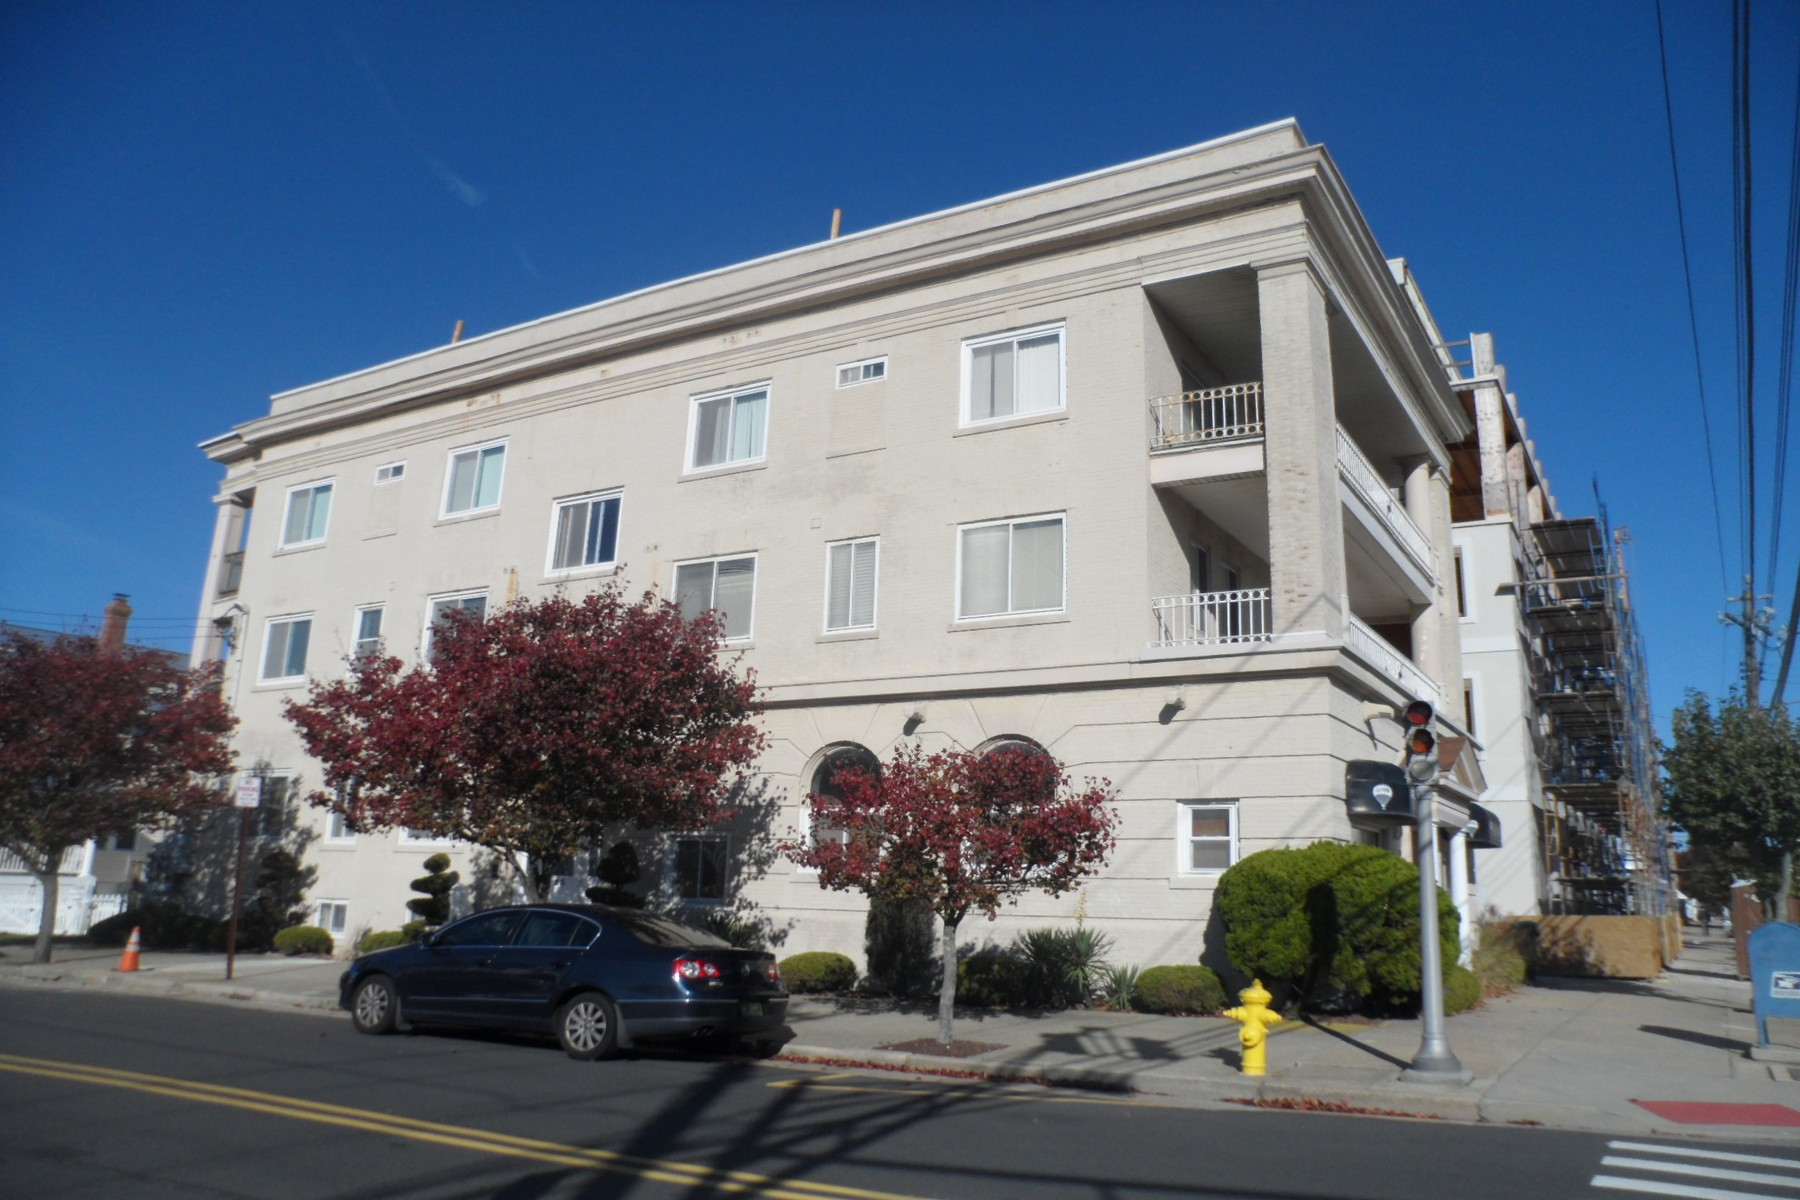 Condominium for Rent at 25 S Surrey Ave B2 Ventnor, New Jersey 08406 United States